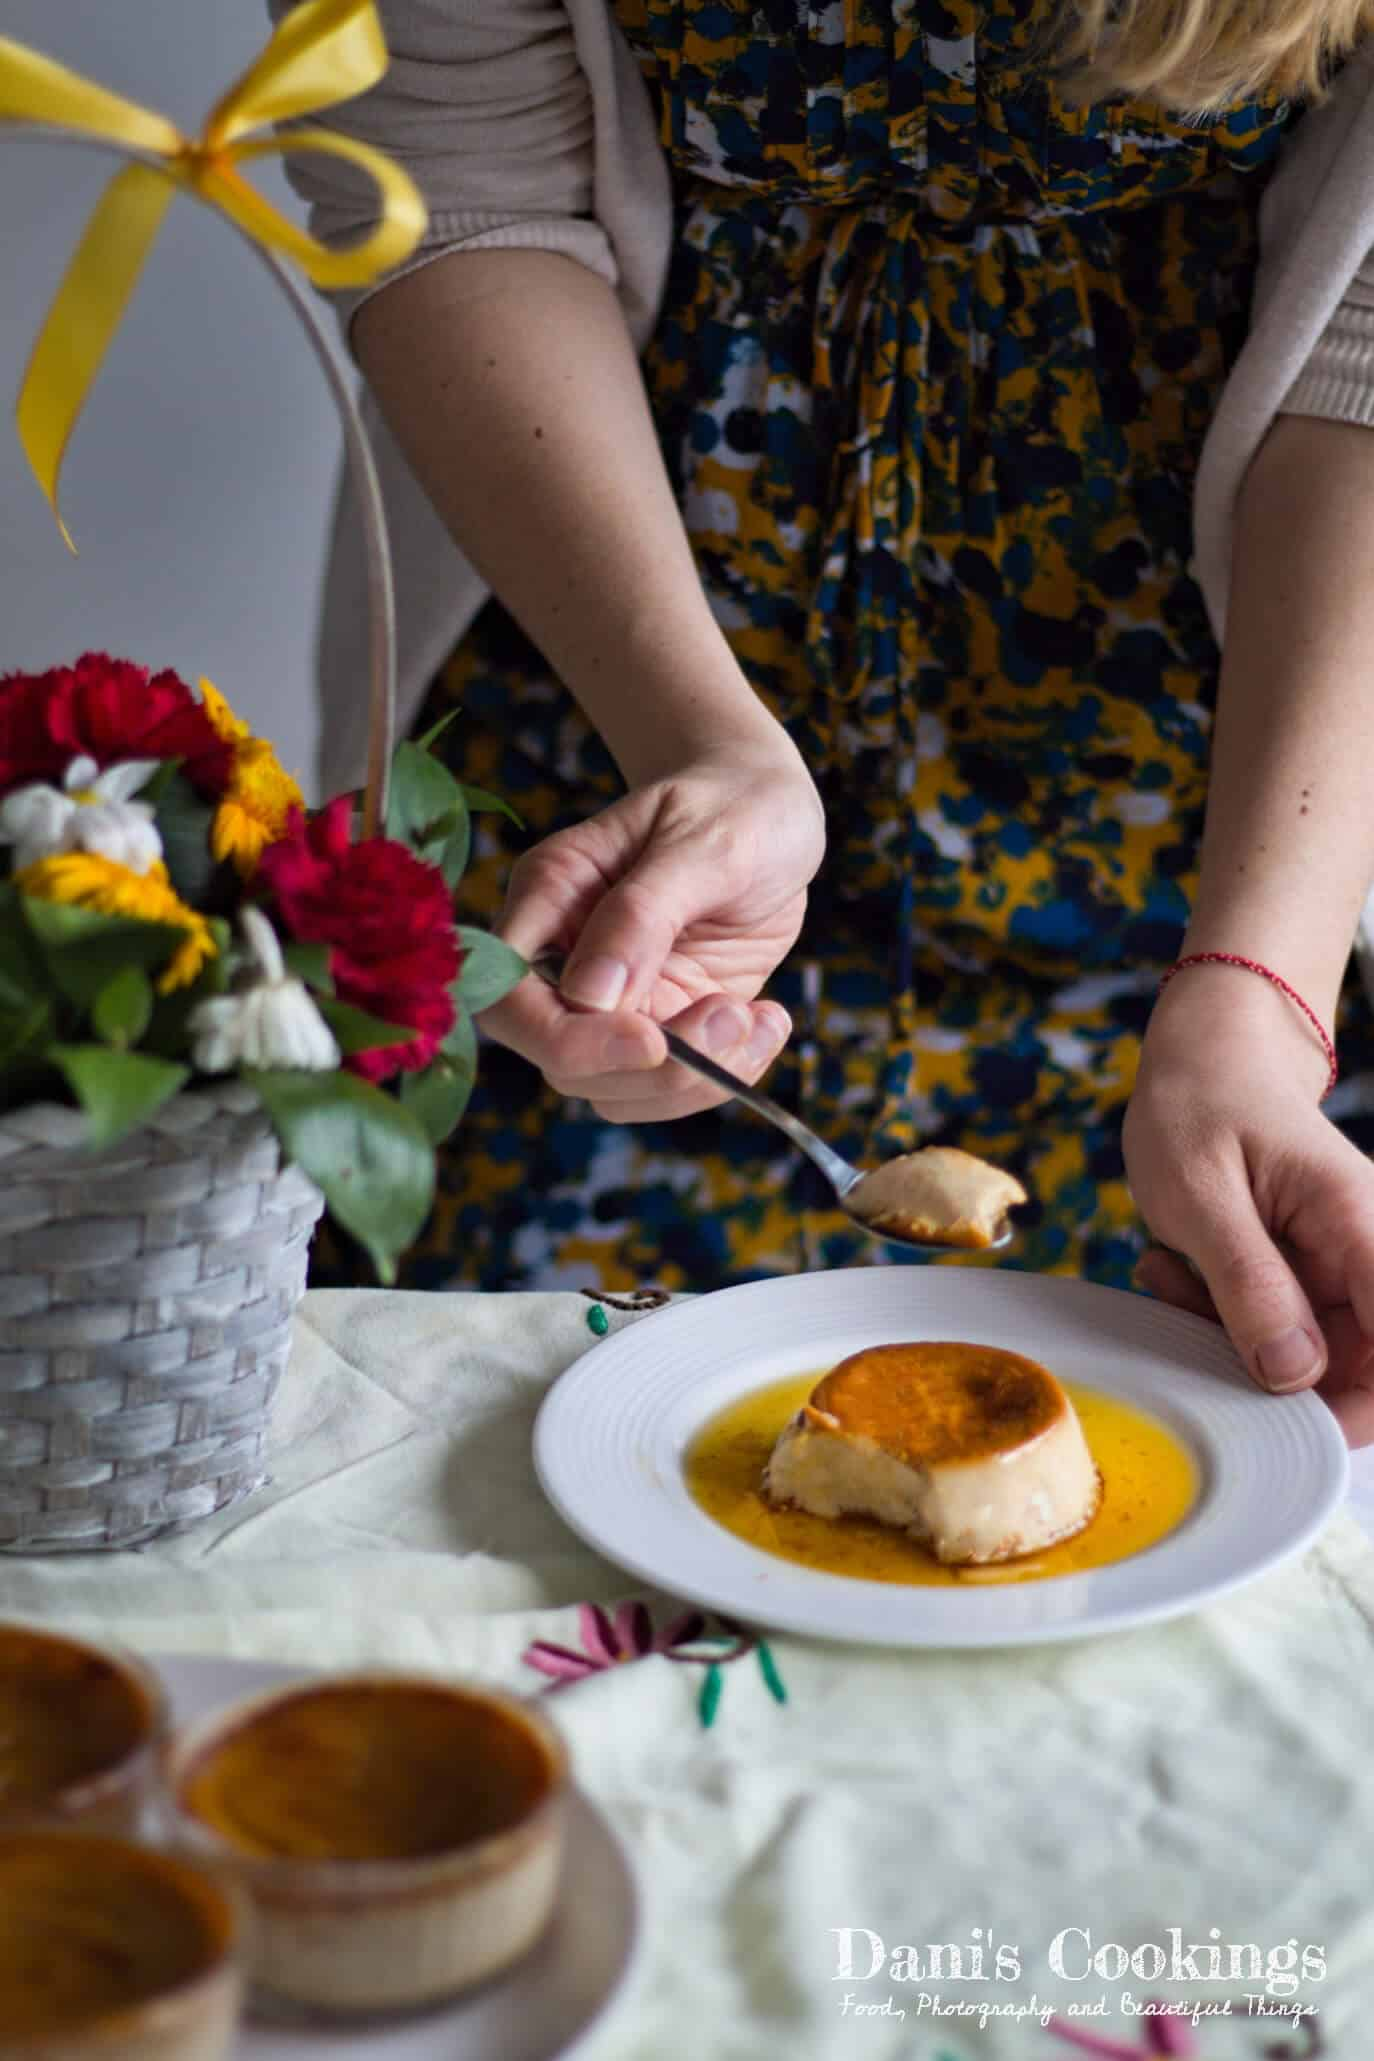 a woman eating creme caramel on a plate next to flowers